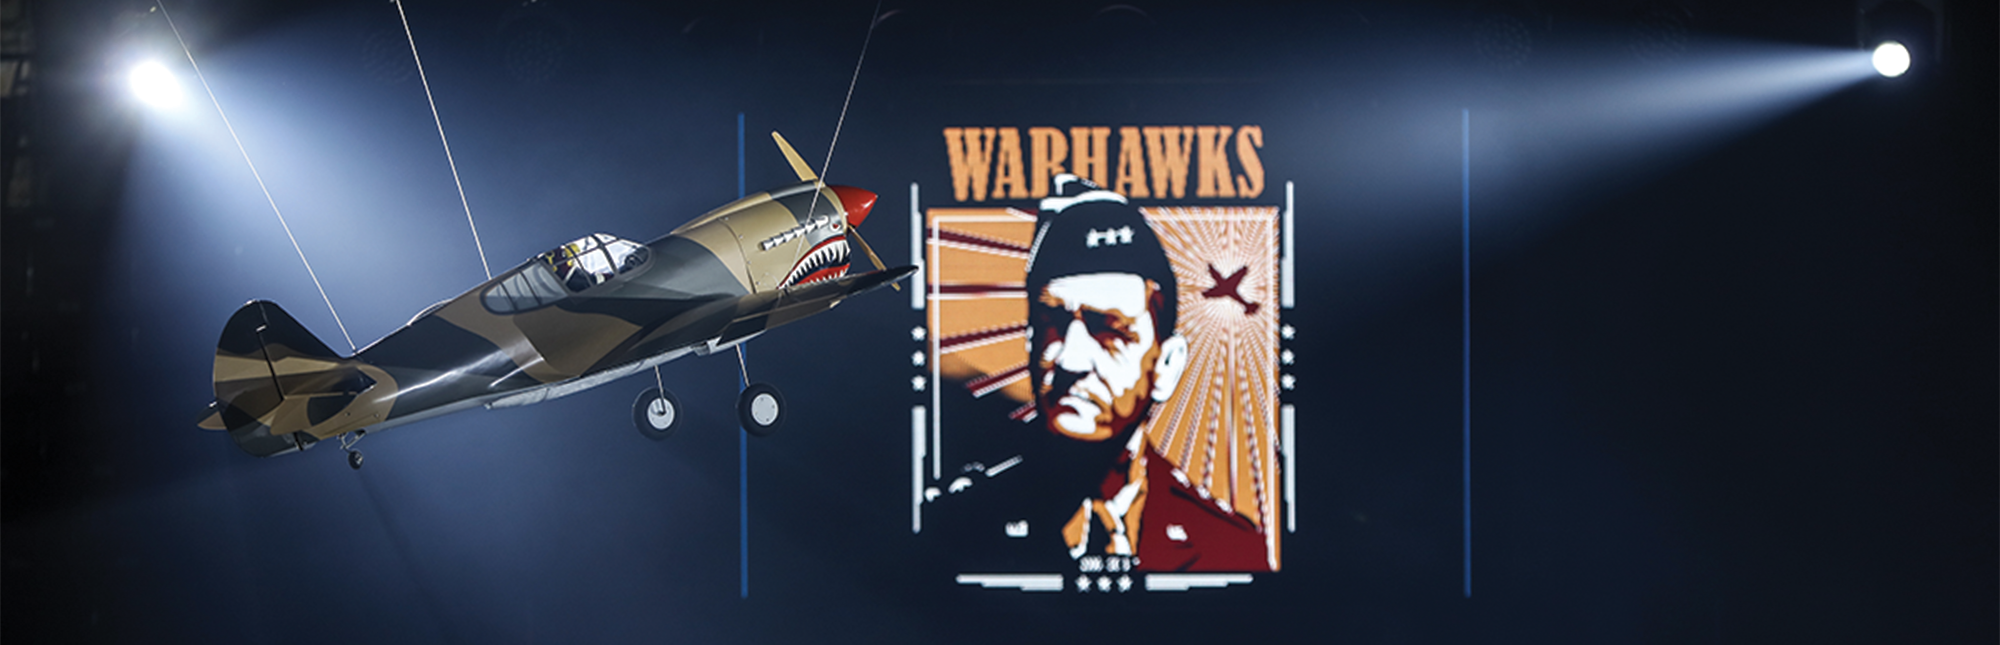 P-40 Carousel Graphic